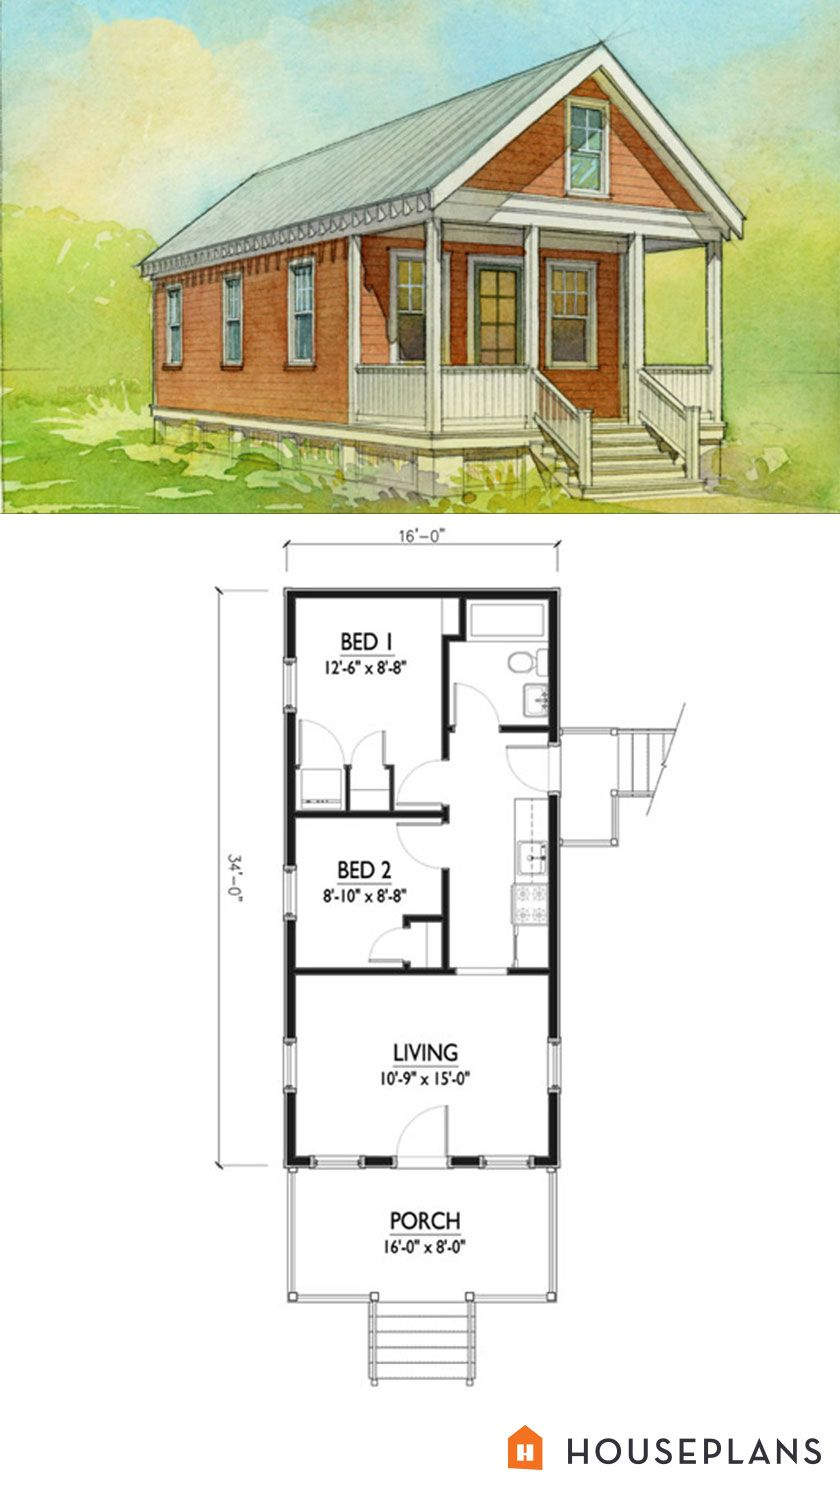 Small katrina cottage house plan 500sft 2br 1 bath by marianne cusato houseplans plan 514 5 - Small house plans ...